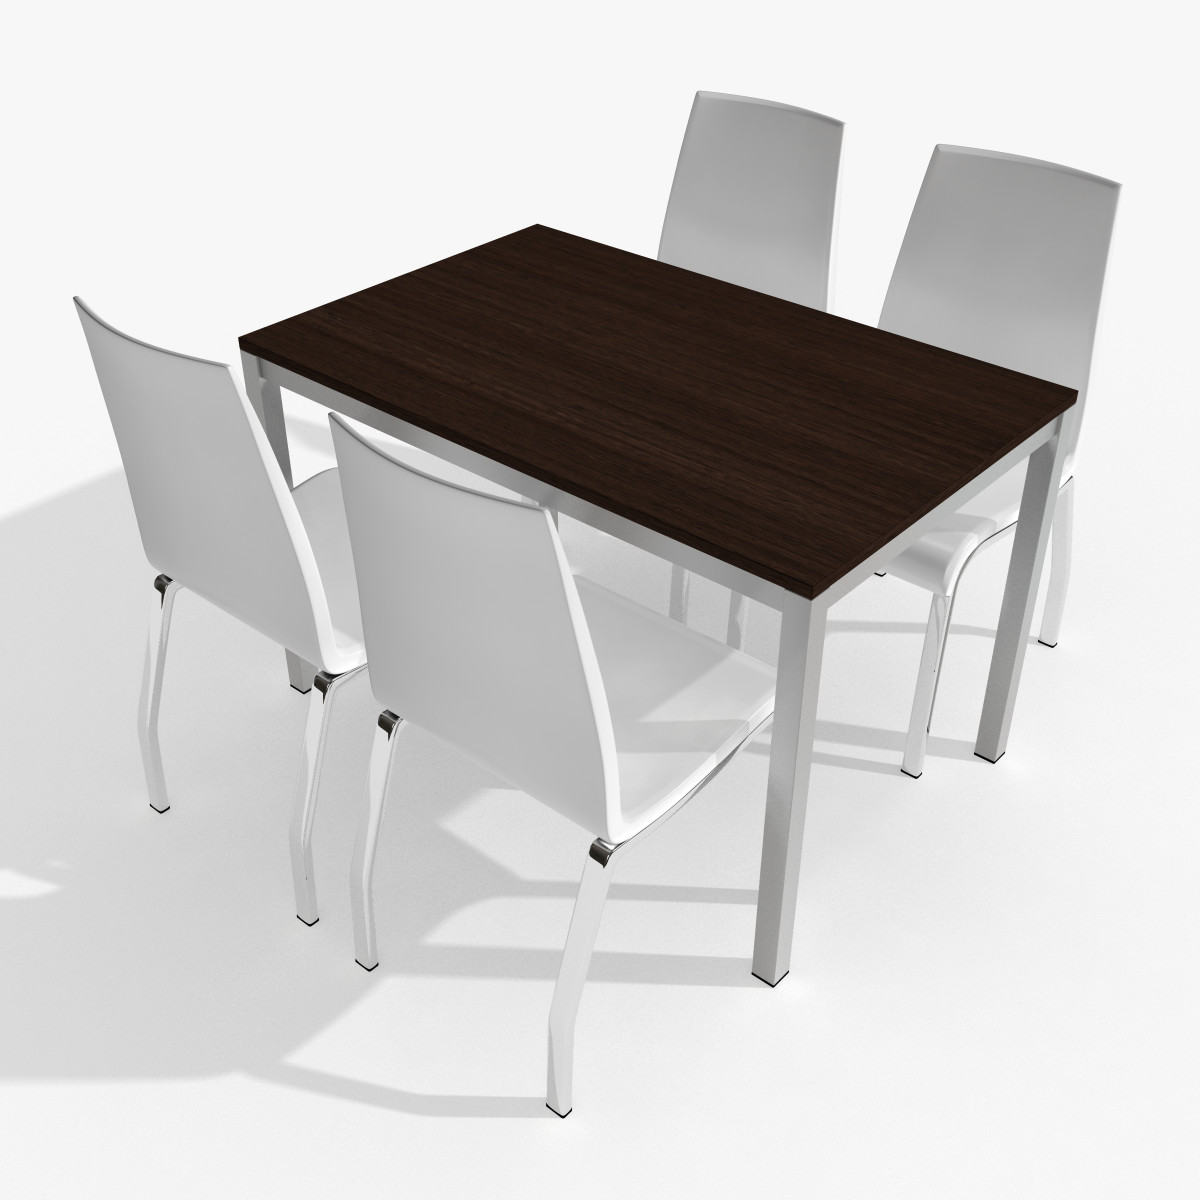 table_chairs03.png